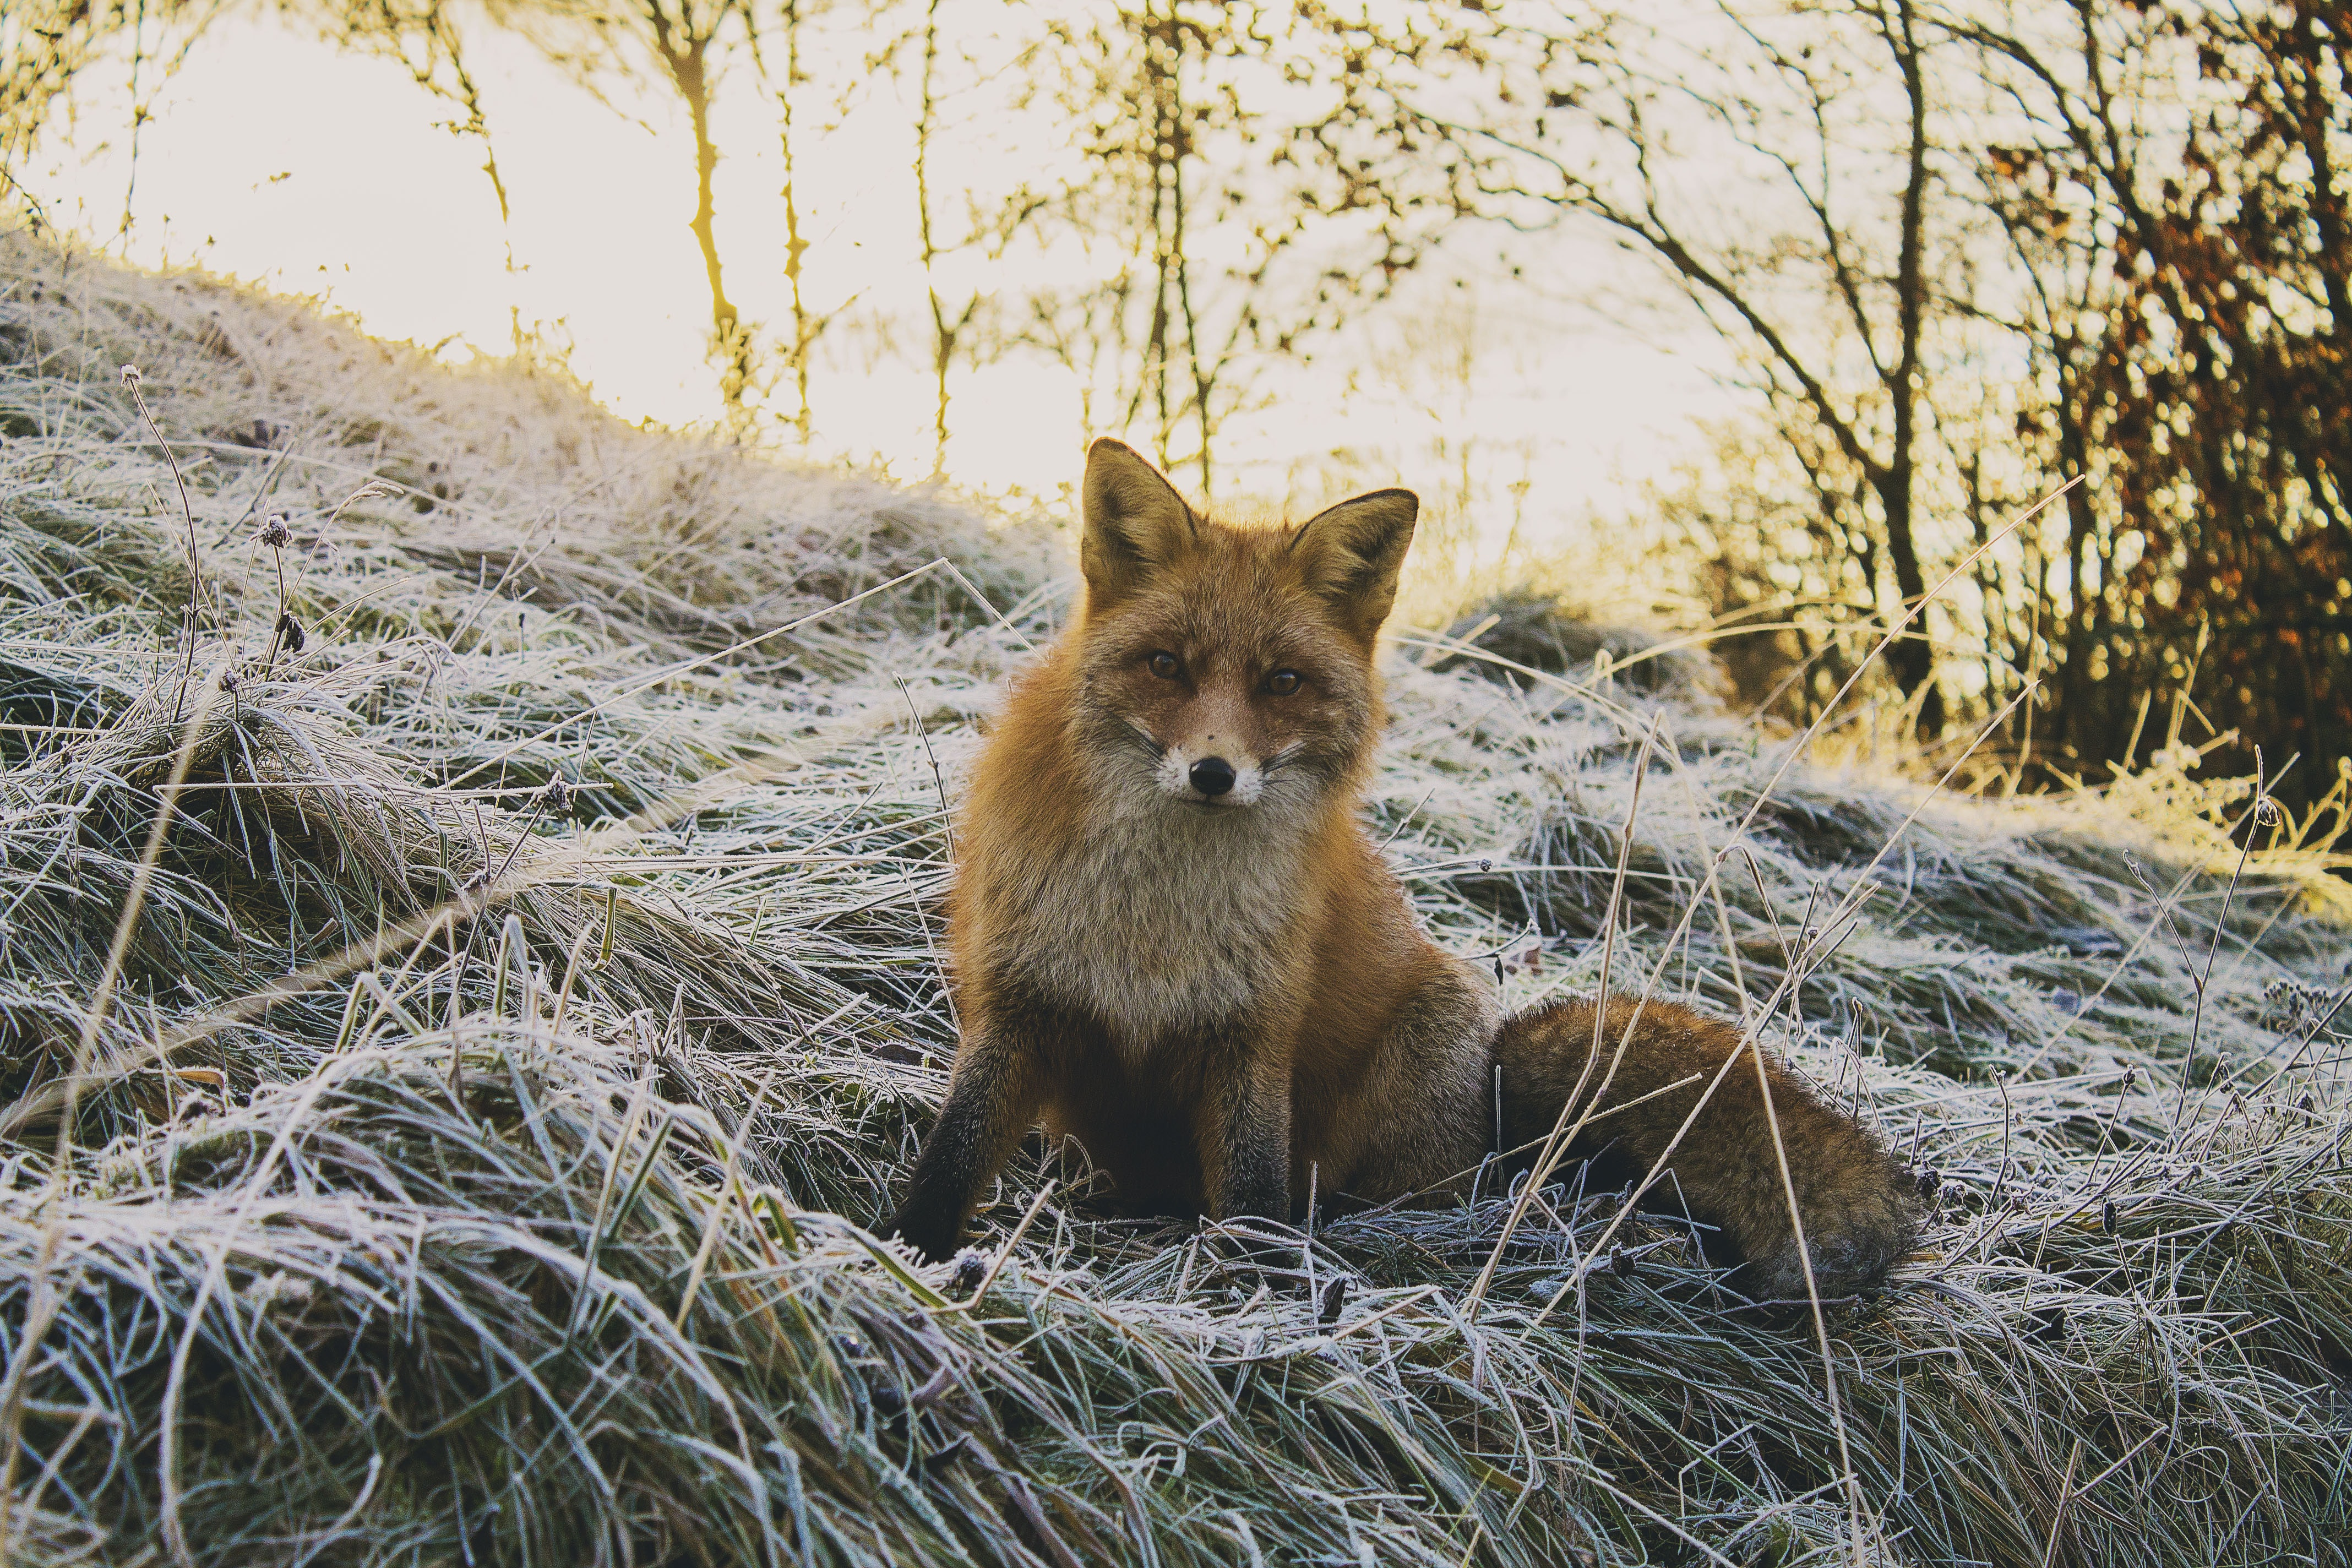 A docile fox sitting on dry grass